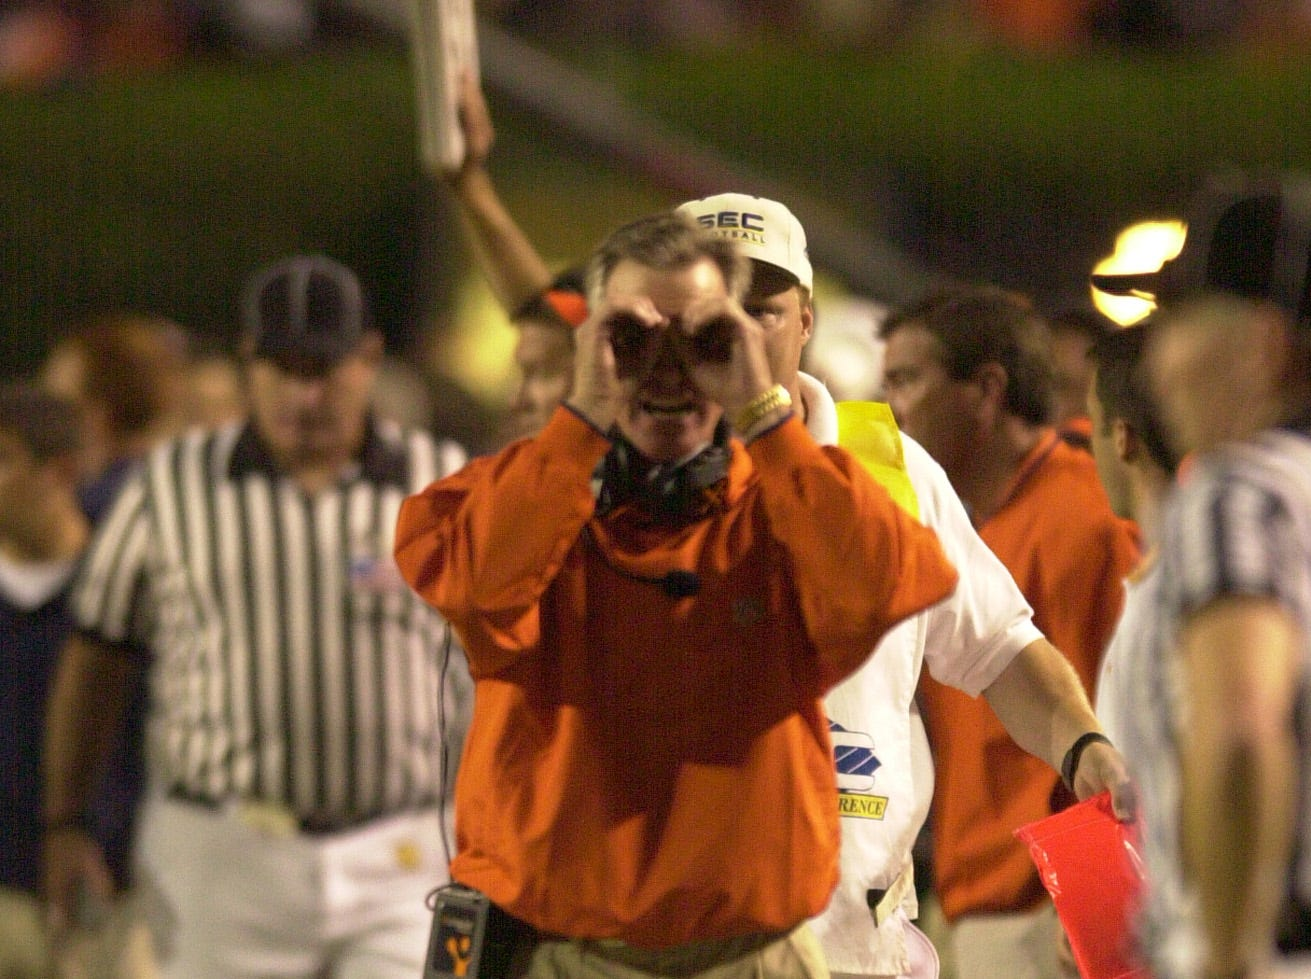 Auburn coach Tommy Tuberville questions the vision fo the refreee after a pass-interference call went against Auburn on Saturday at Auburn.